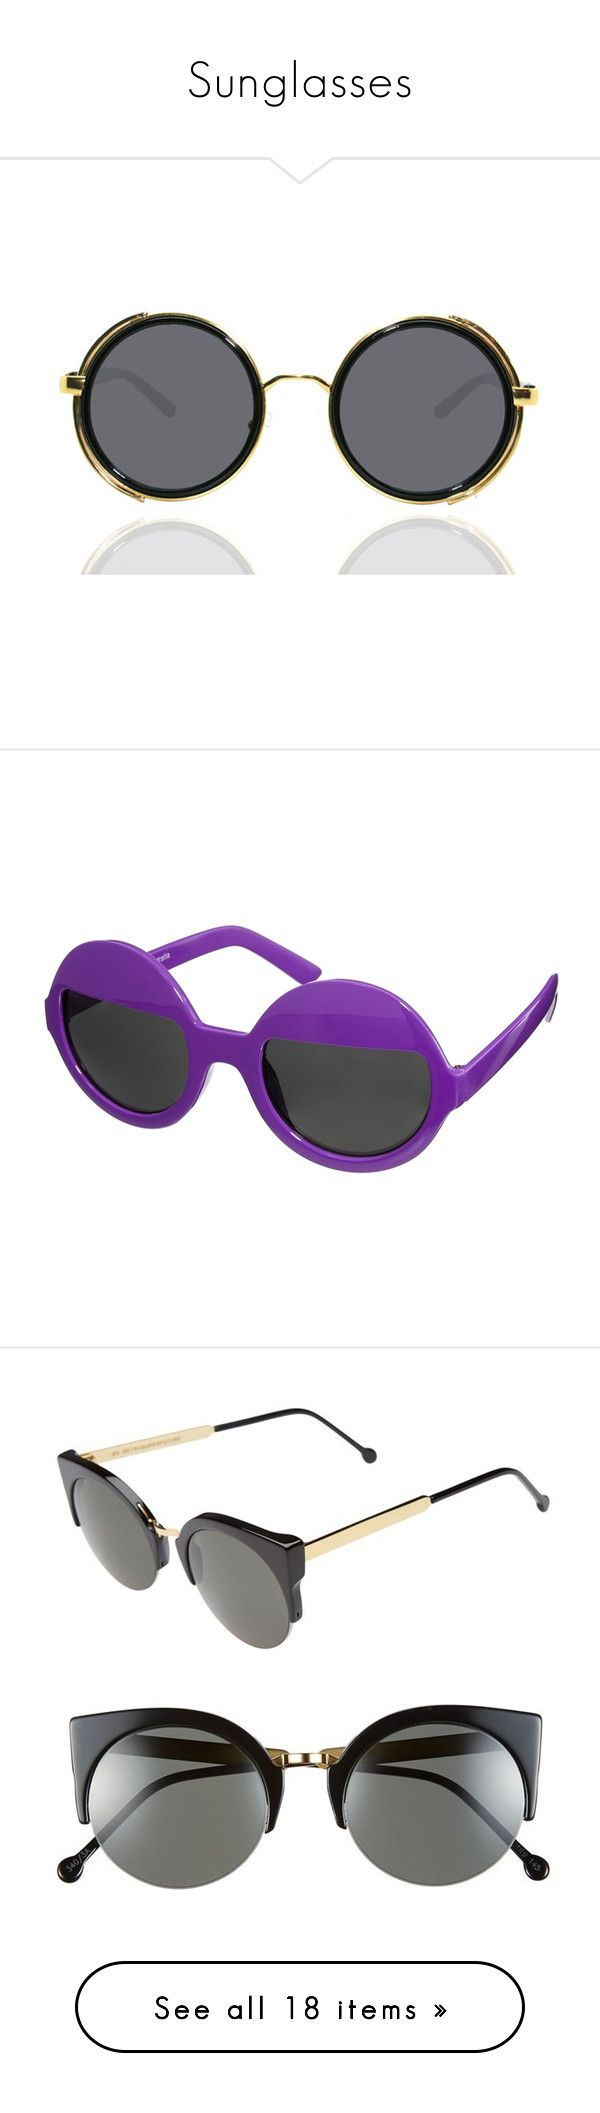 """""""Sunglasses"""" by janinati ❤ liked on Polyvore featuring accessories, eyewear, sunglasses, quay eyewear, uv protection glasses, vintage style glasses, vintage style sunglasses, quay sunglasses, purple and round frame glasses"""